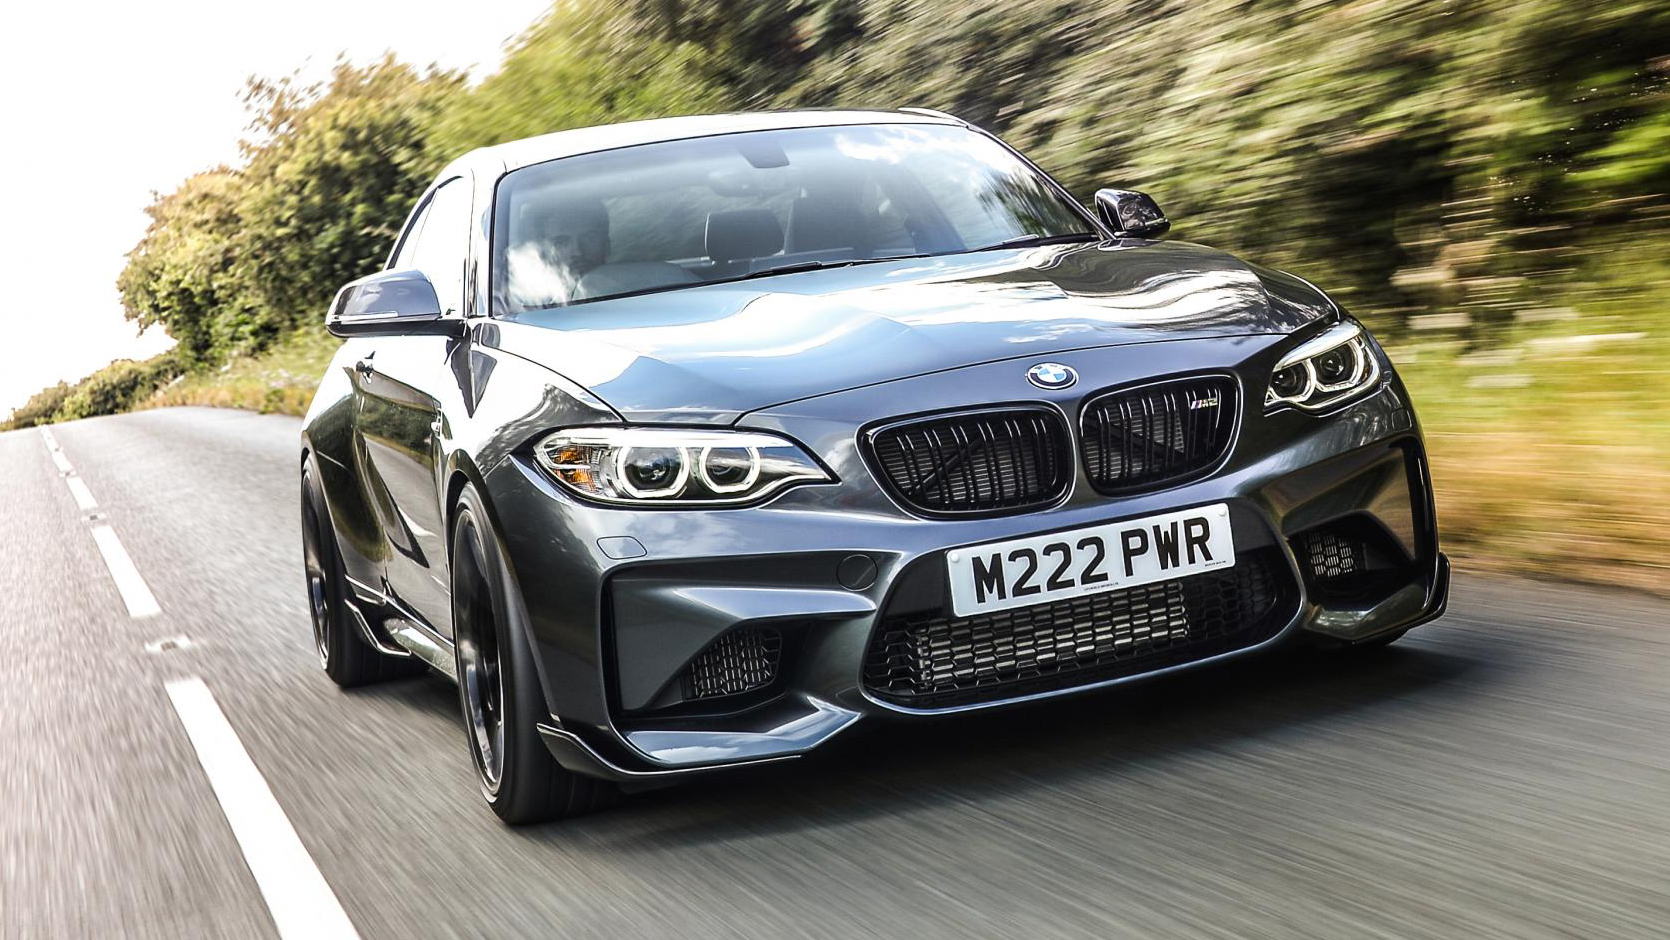 Litchfield BMW M2 review: 420bhp modified coupe driven | Top